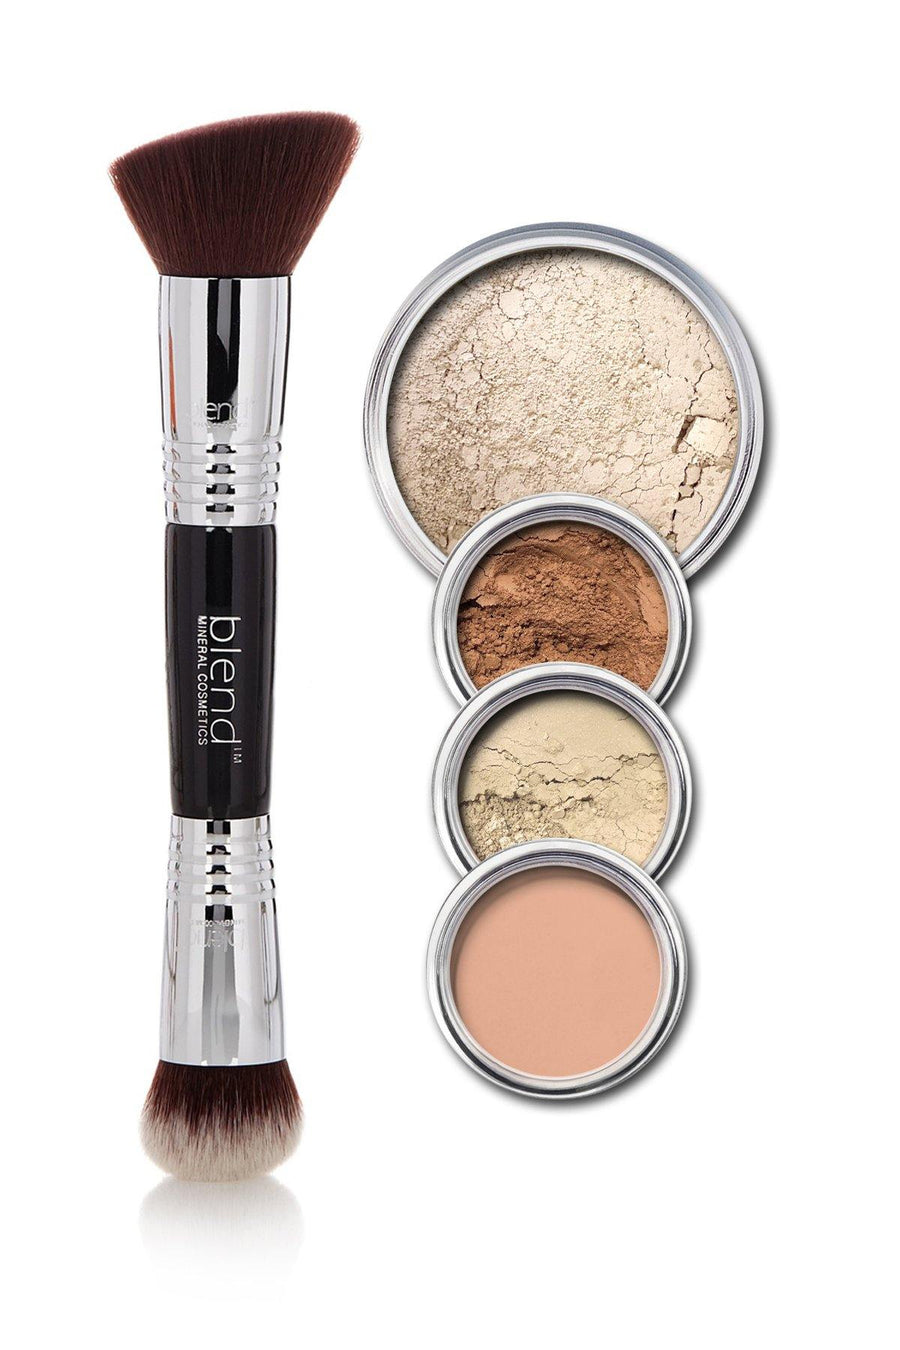 All-Over Face Contour & Highlighting Kit - Light - Blend Mineral Cosmetics